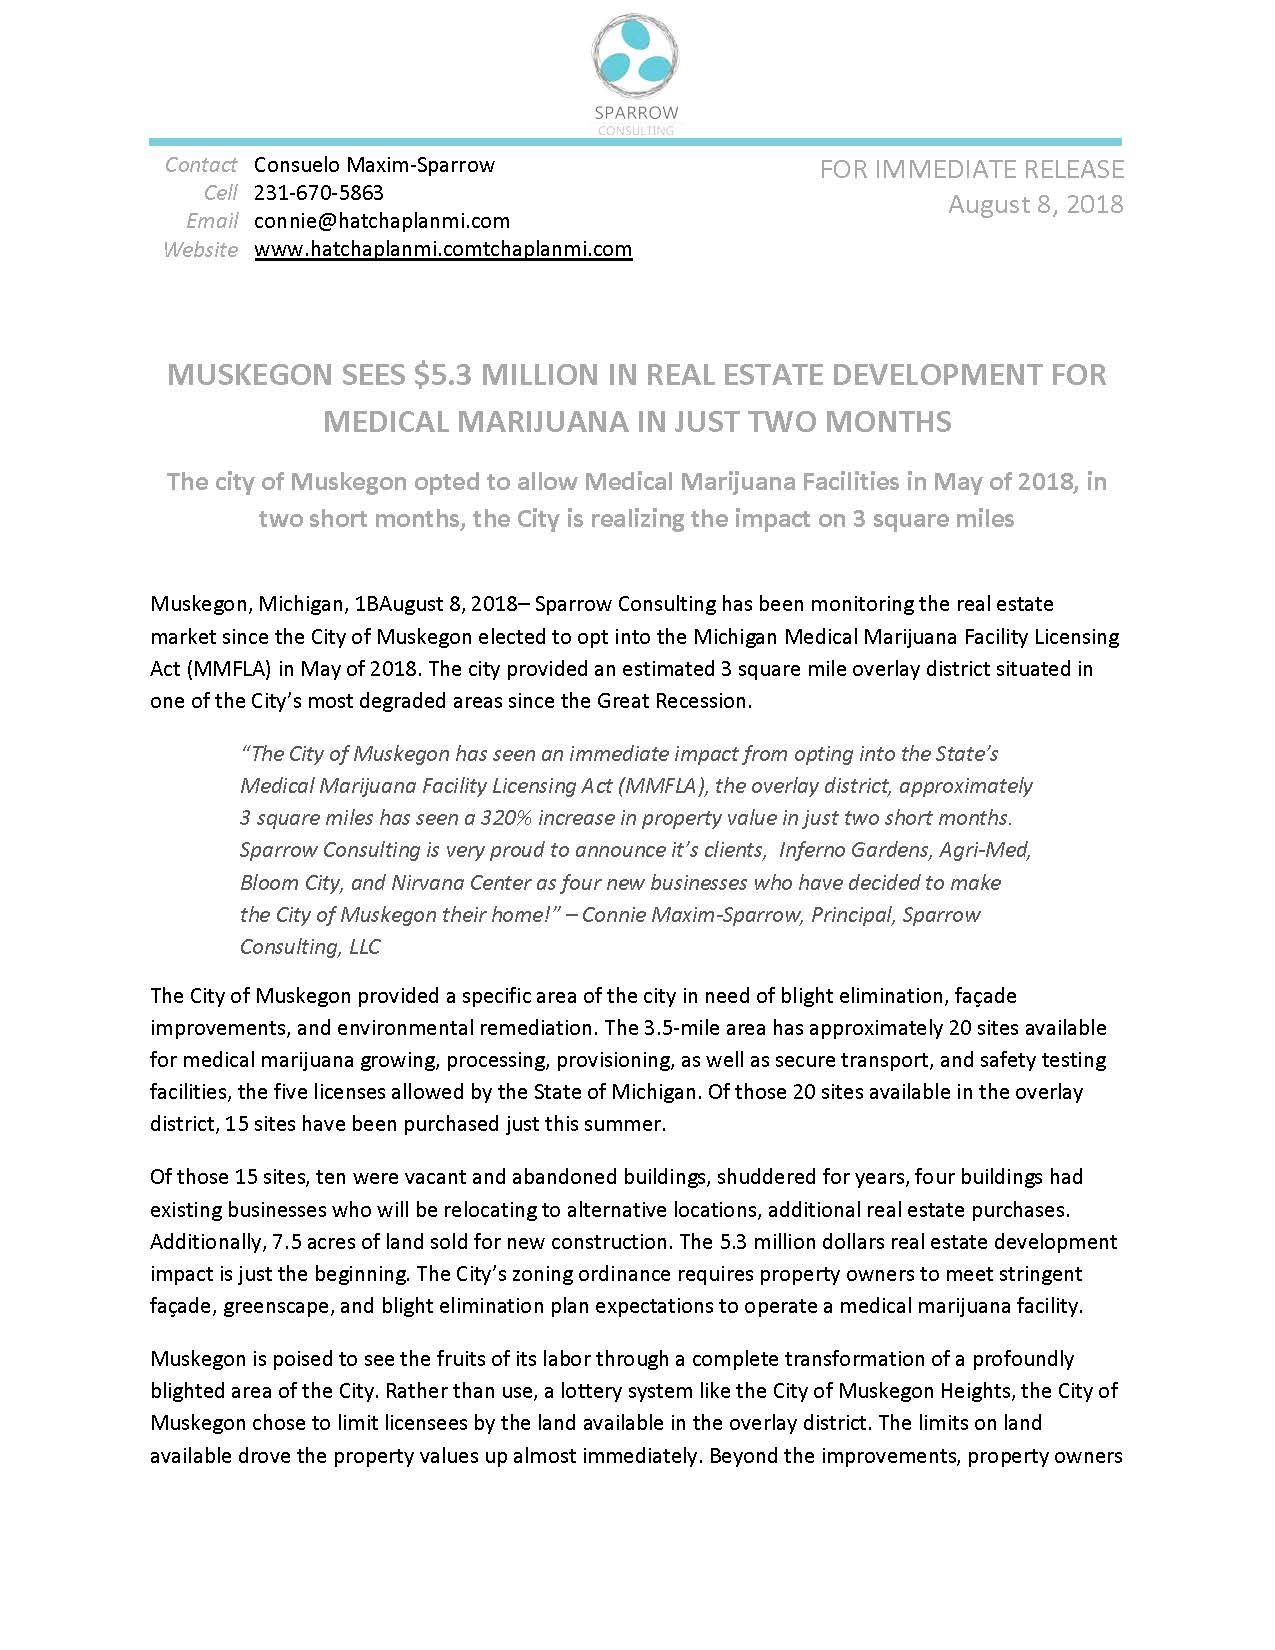 5.3 million in real estate development Muskegon Press Release_Page_1.jpg